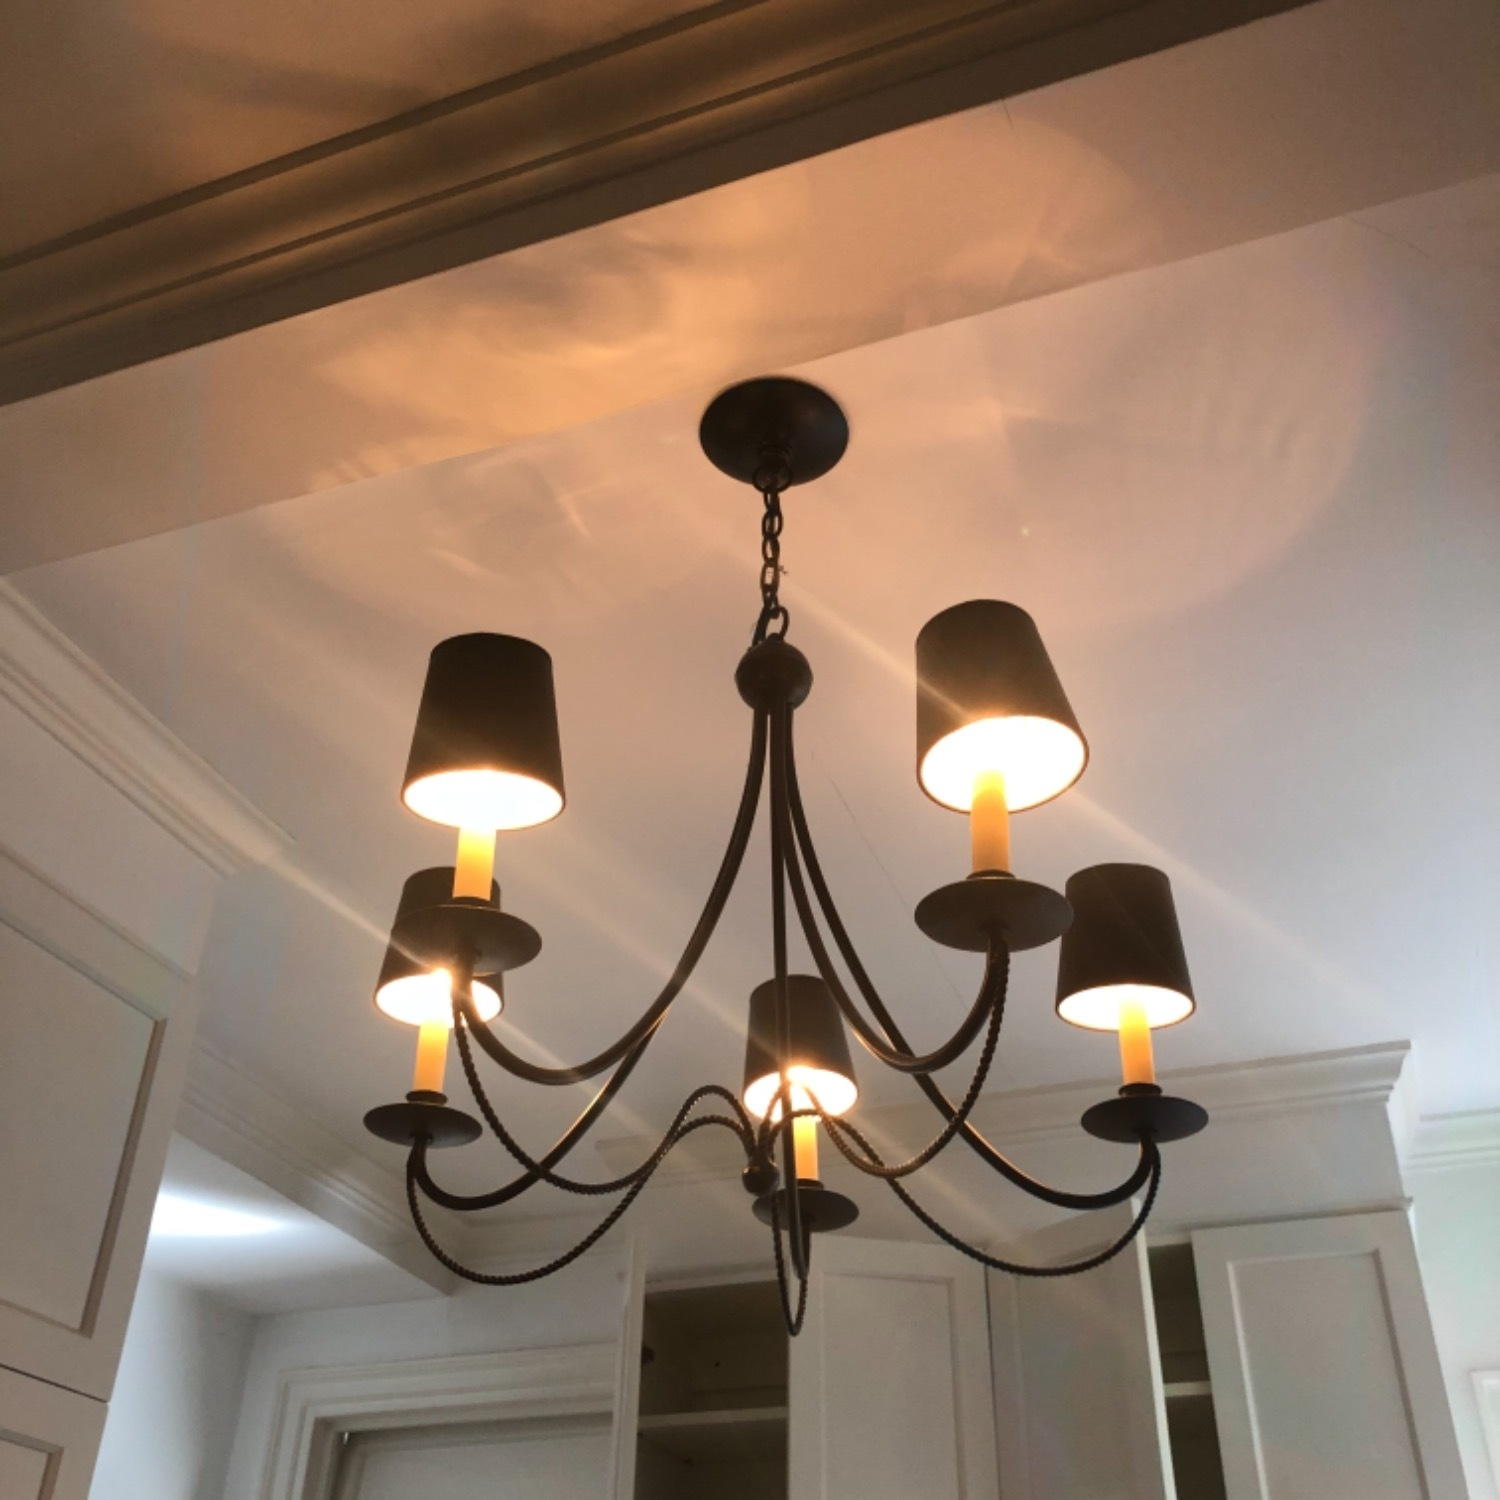 Forged Wrought Iron 5 Bulb Chandelier - image-2